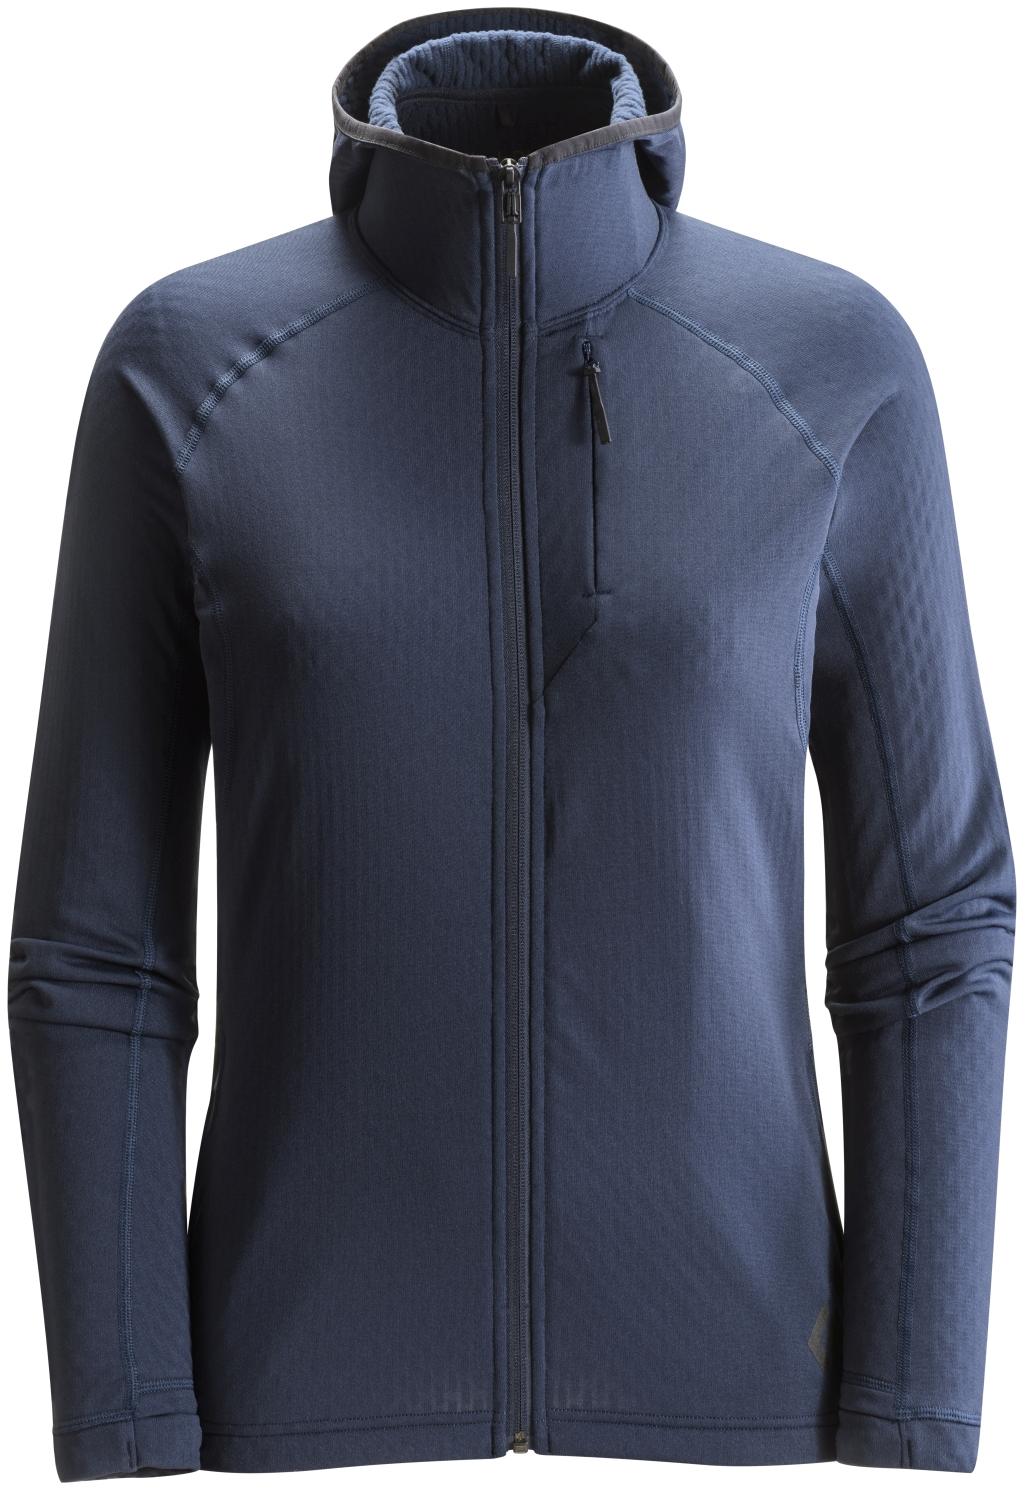 Black Diamond Coefficient Hoody Women's Captain-30